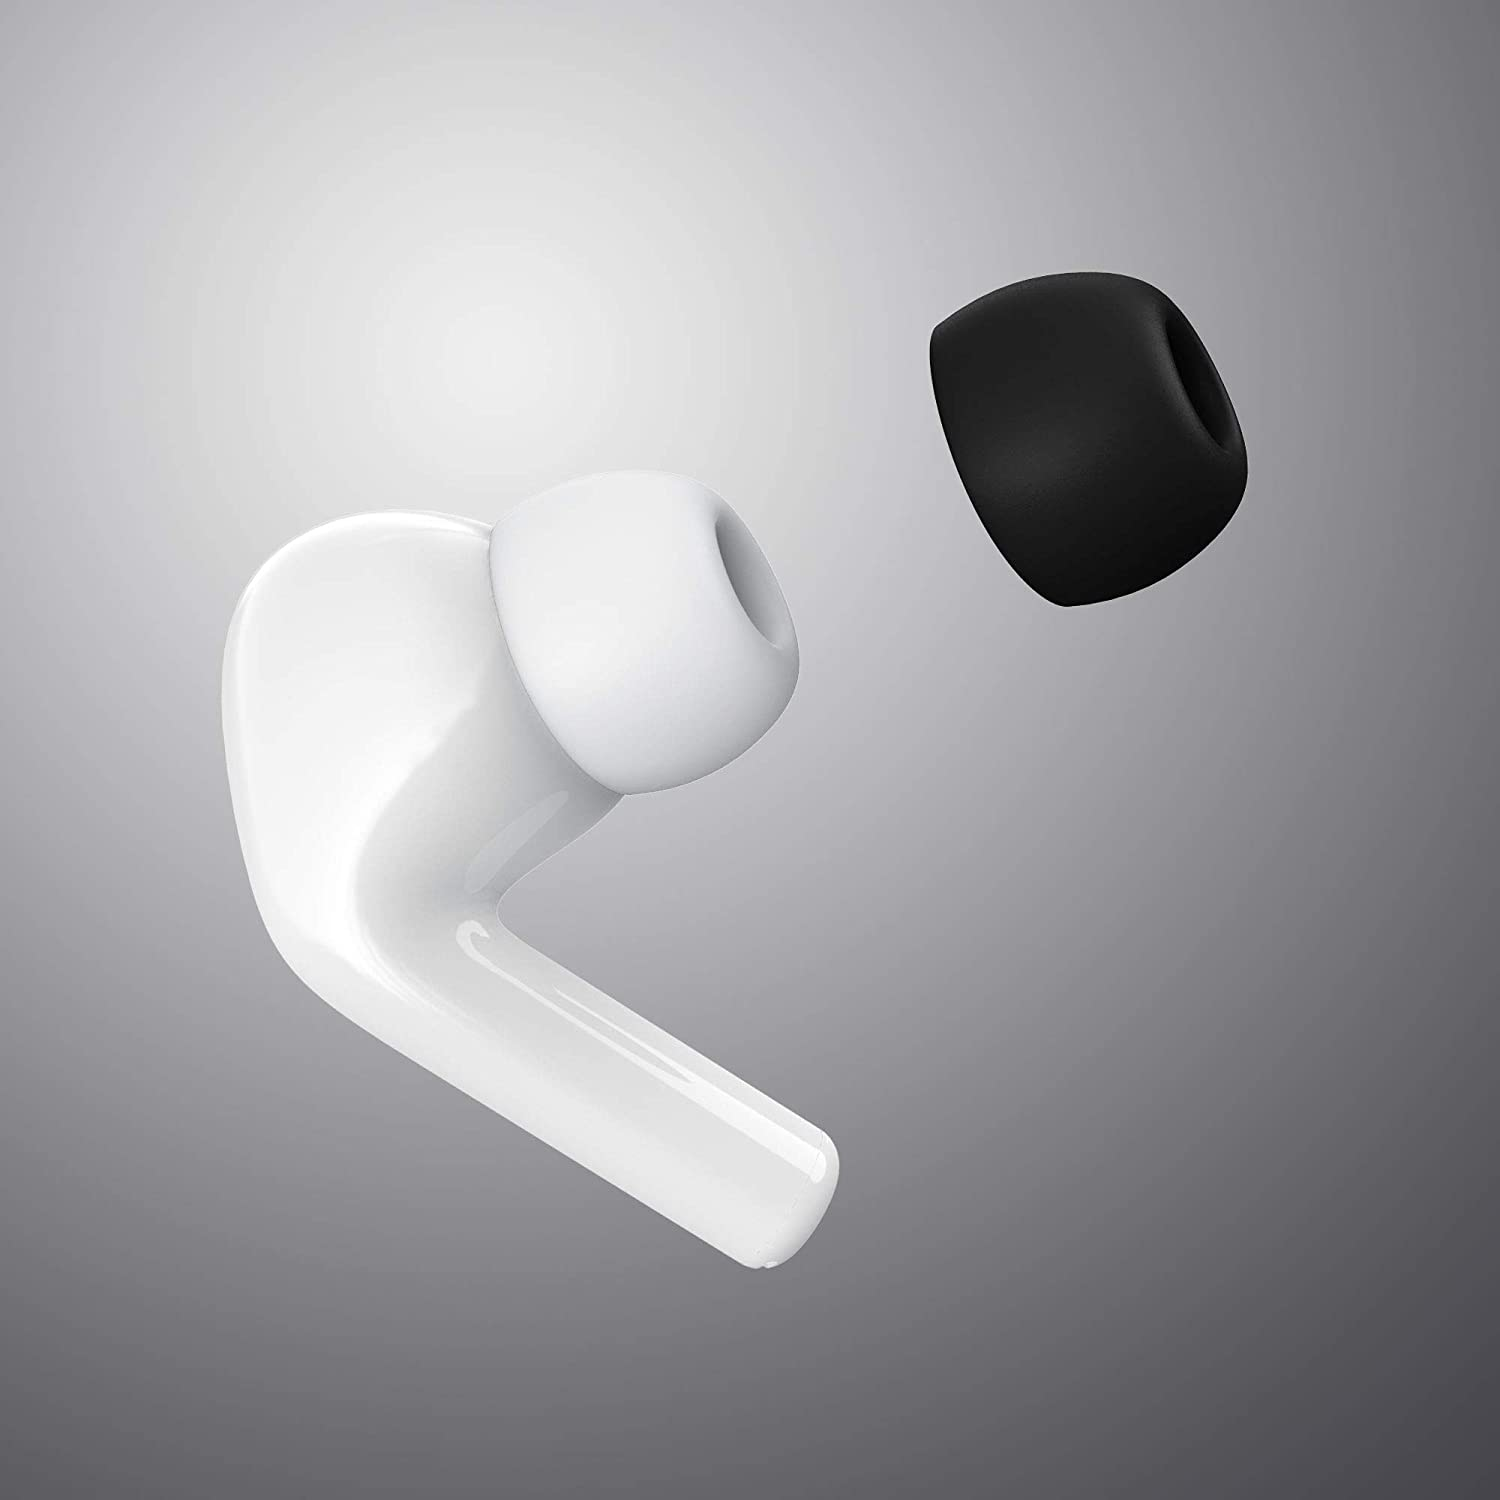 White//M Kisface Anti Slip Earbud Silicone Cover Case Earphone Tips Compatible with AirPods Pro 2019 Earplugs 2 Pairs